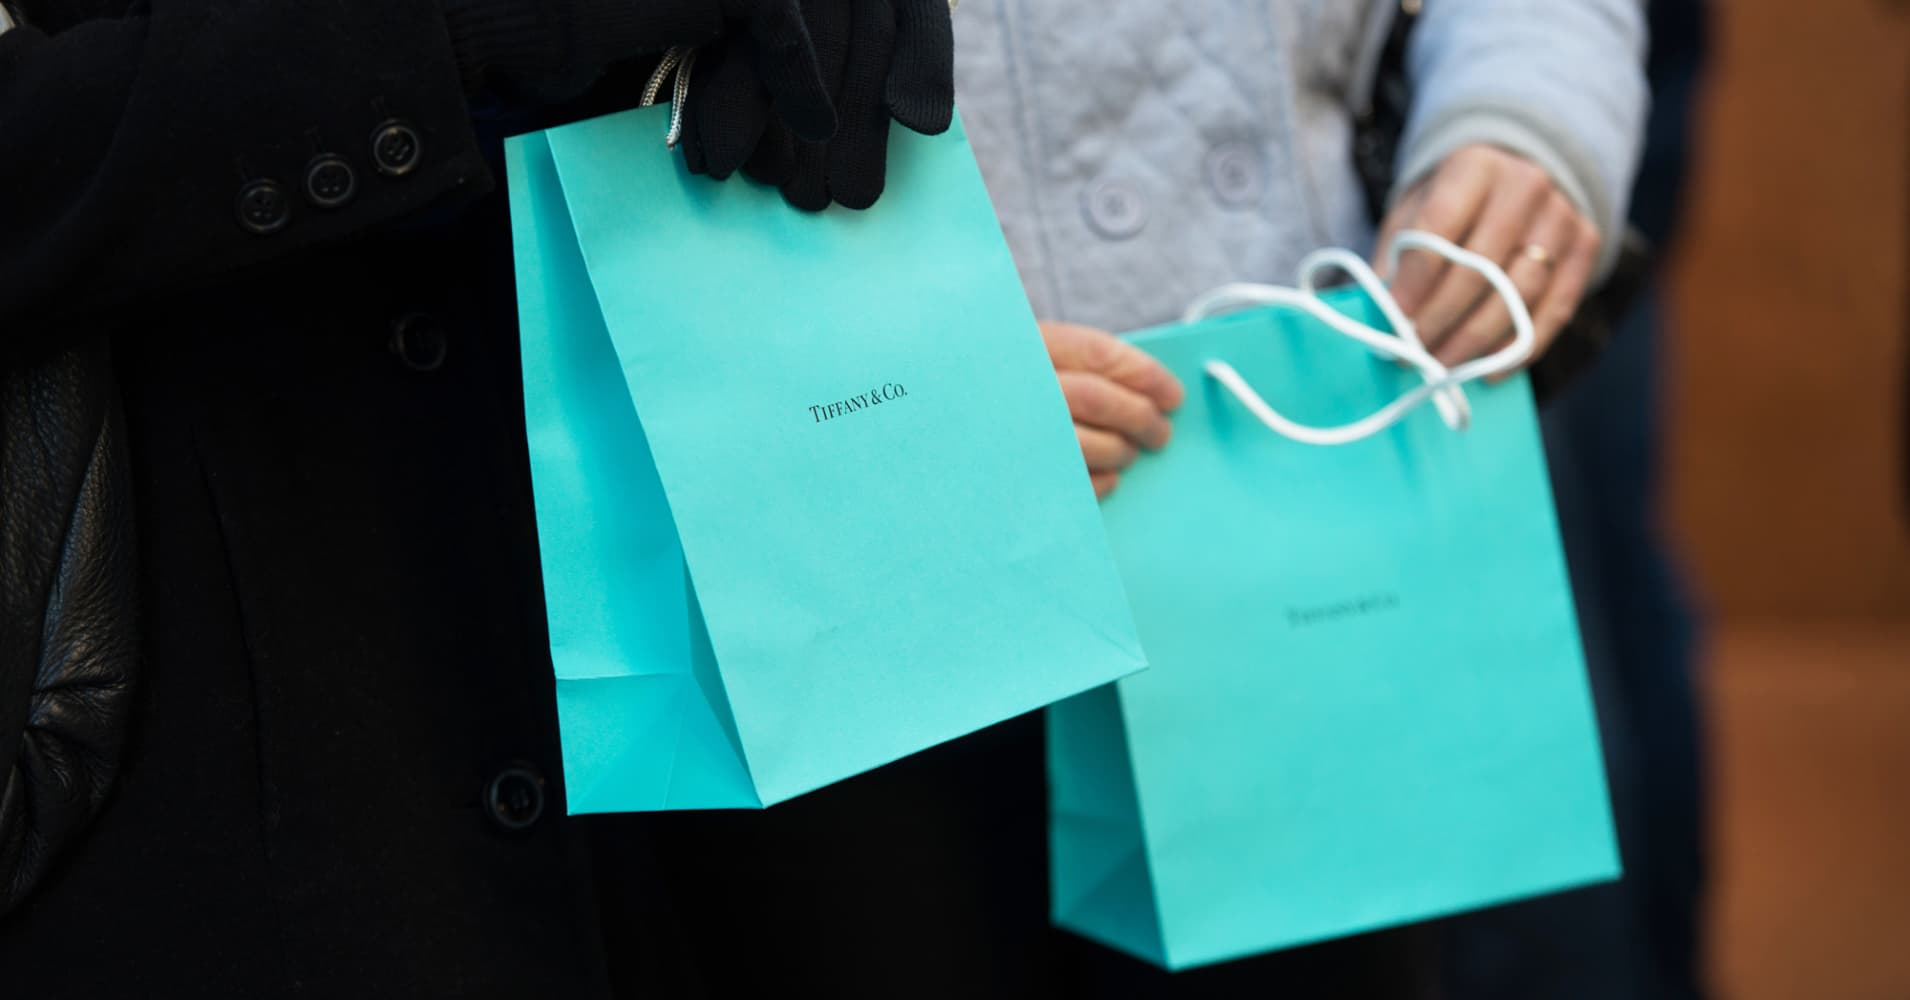 Stocks making the biggest moves midday: Tiffany, Nike, Avon Products & more